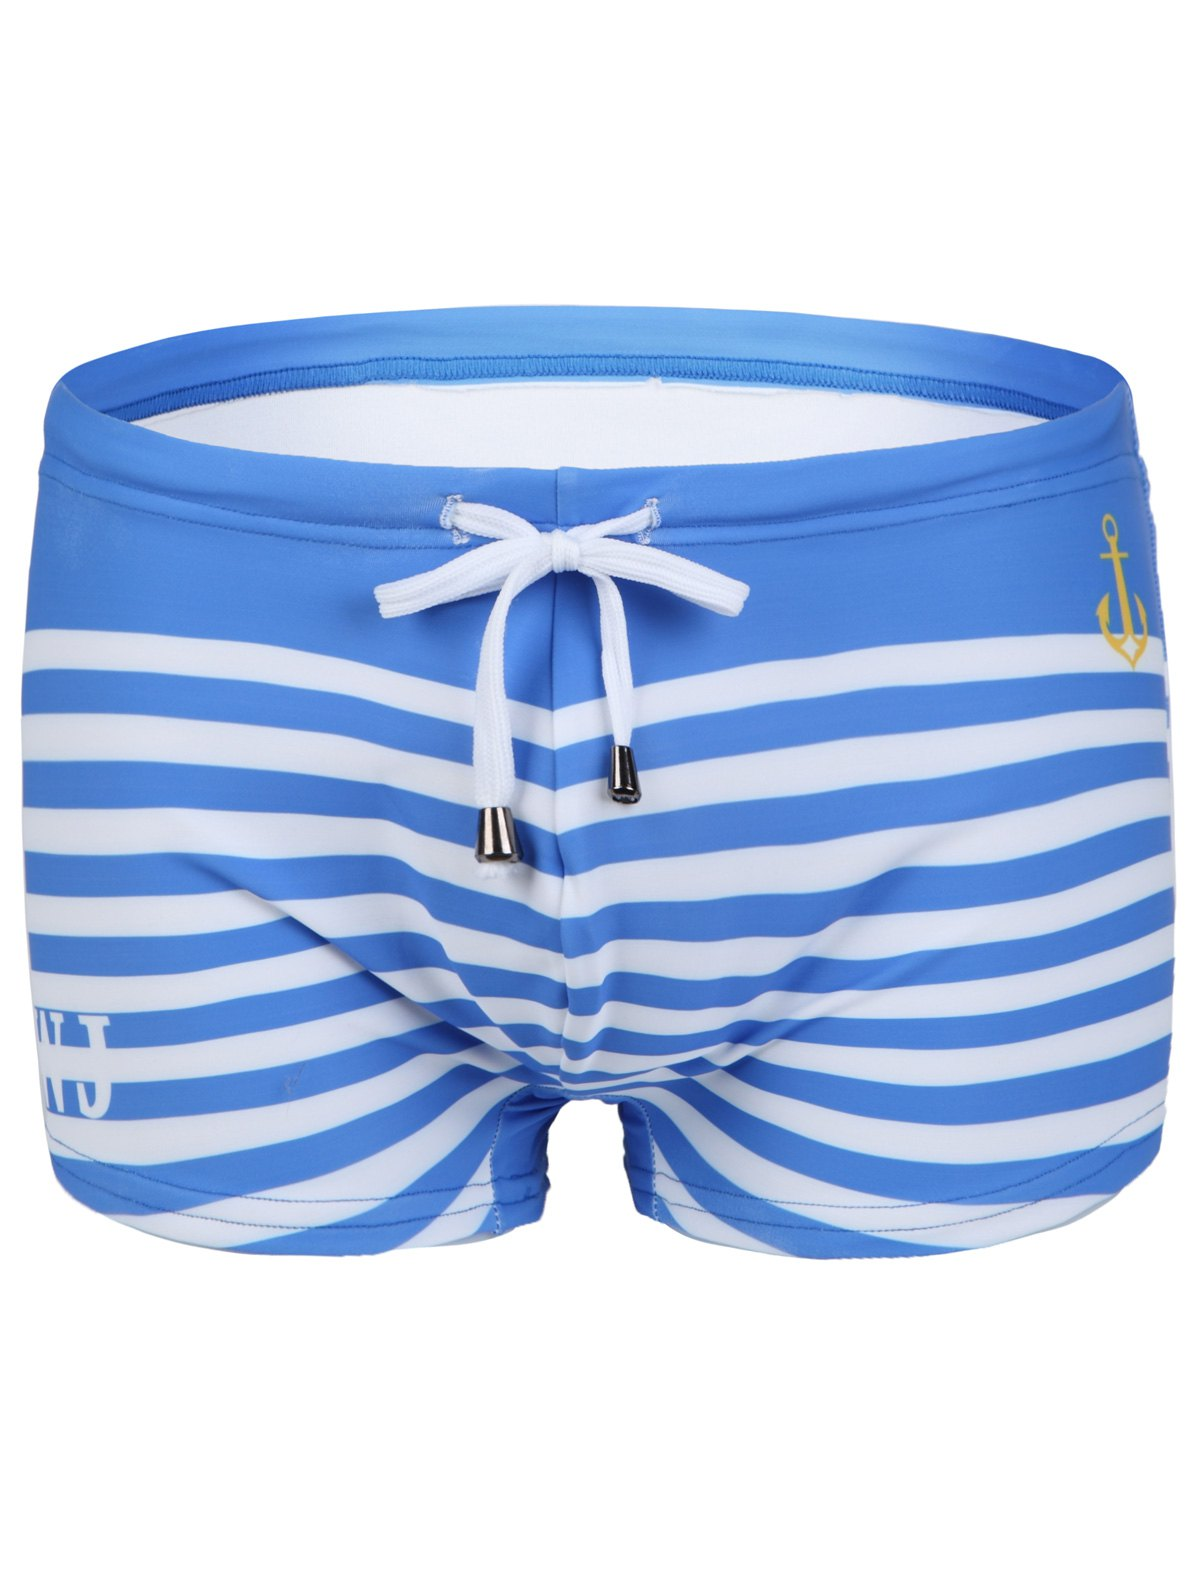 Lace-Up Design Stripe Letter and Anchor Print Men's Swimming Trunks - AZURE XL